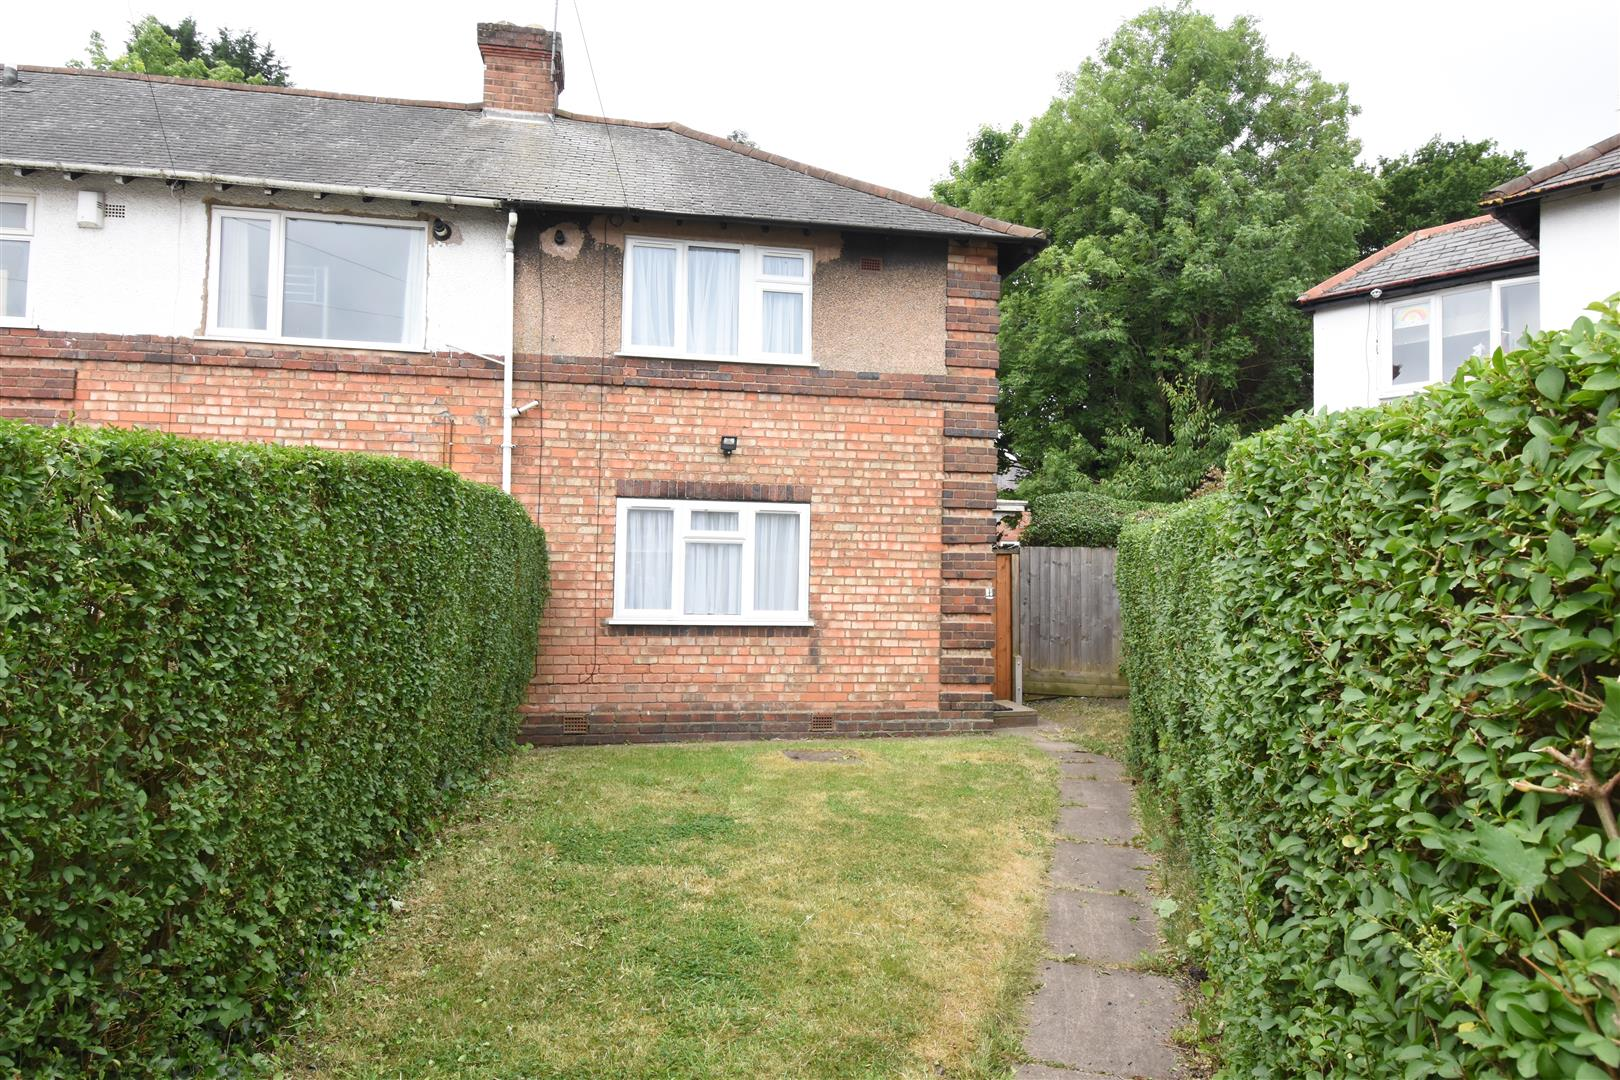 3 bed  for sale in Wilcote Grove, Acocks Green, Birmingham, B27